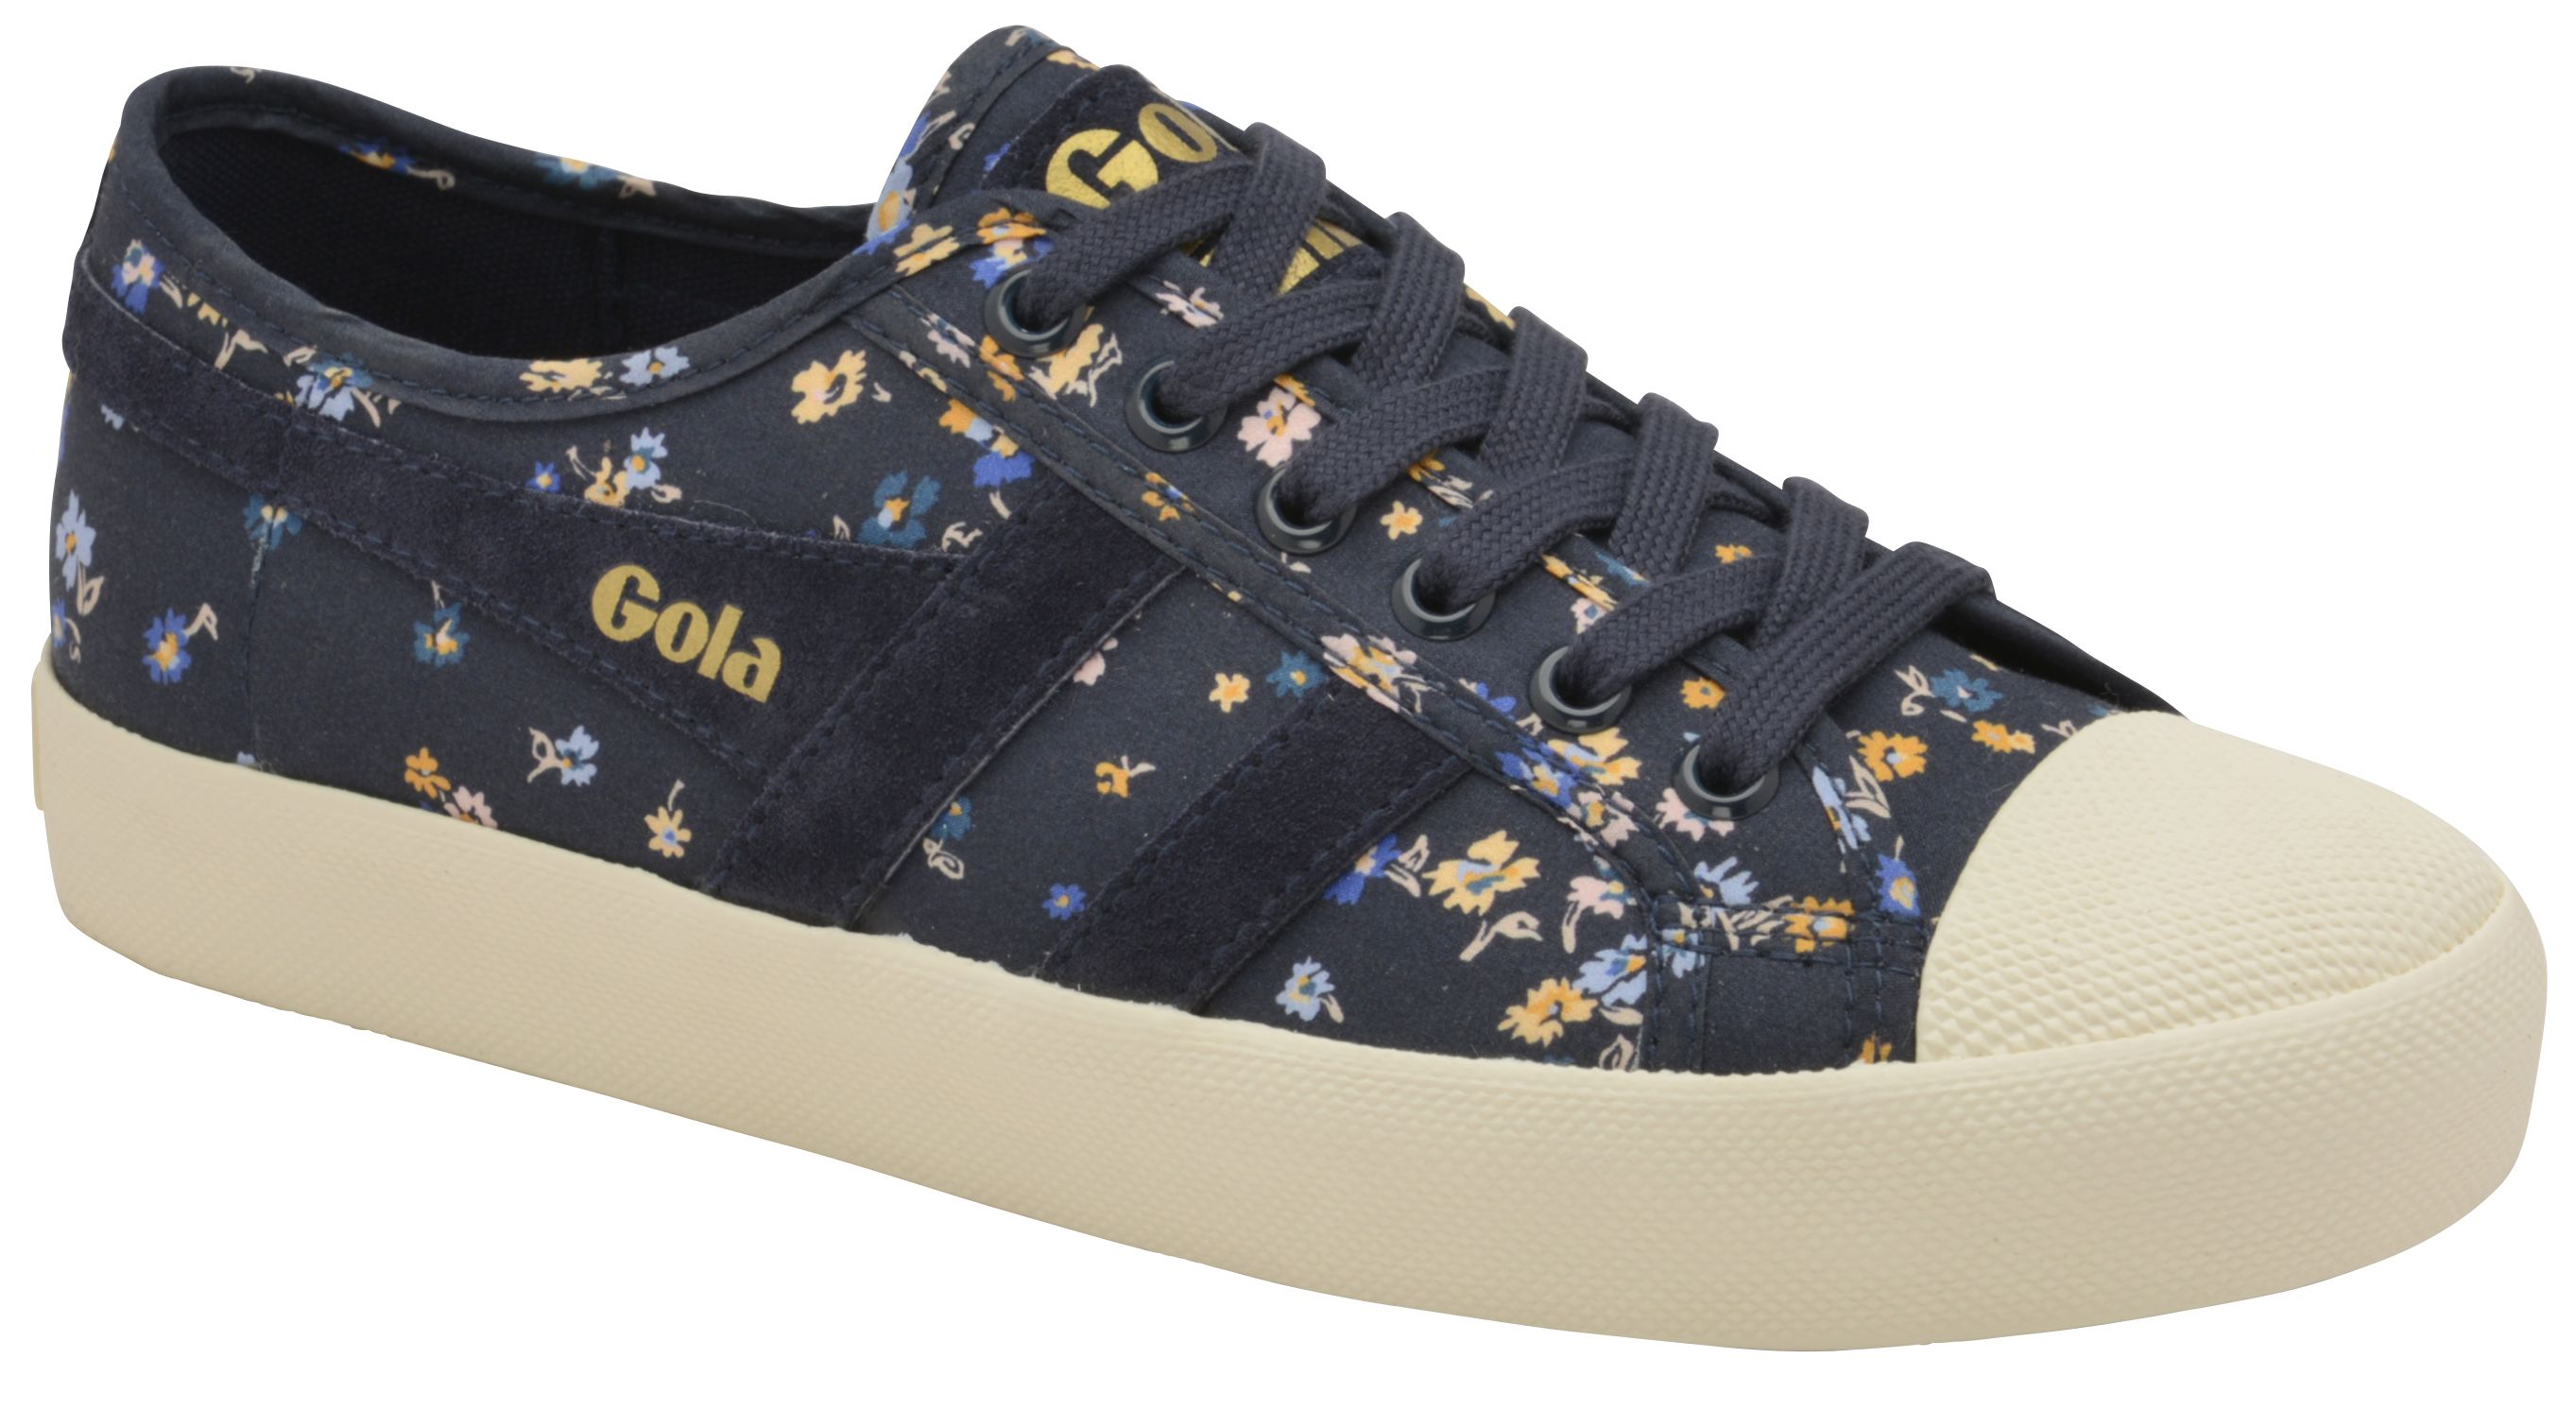 Gola Coaster Liberty St Lace Up Trainers, Blue